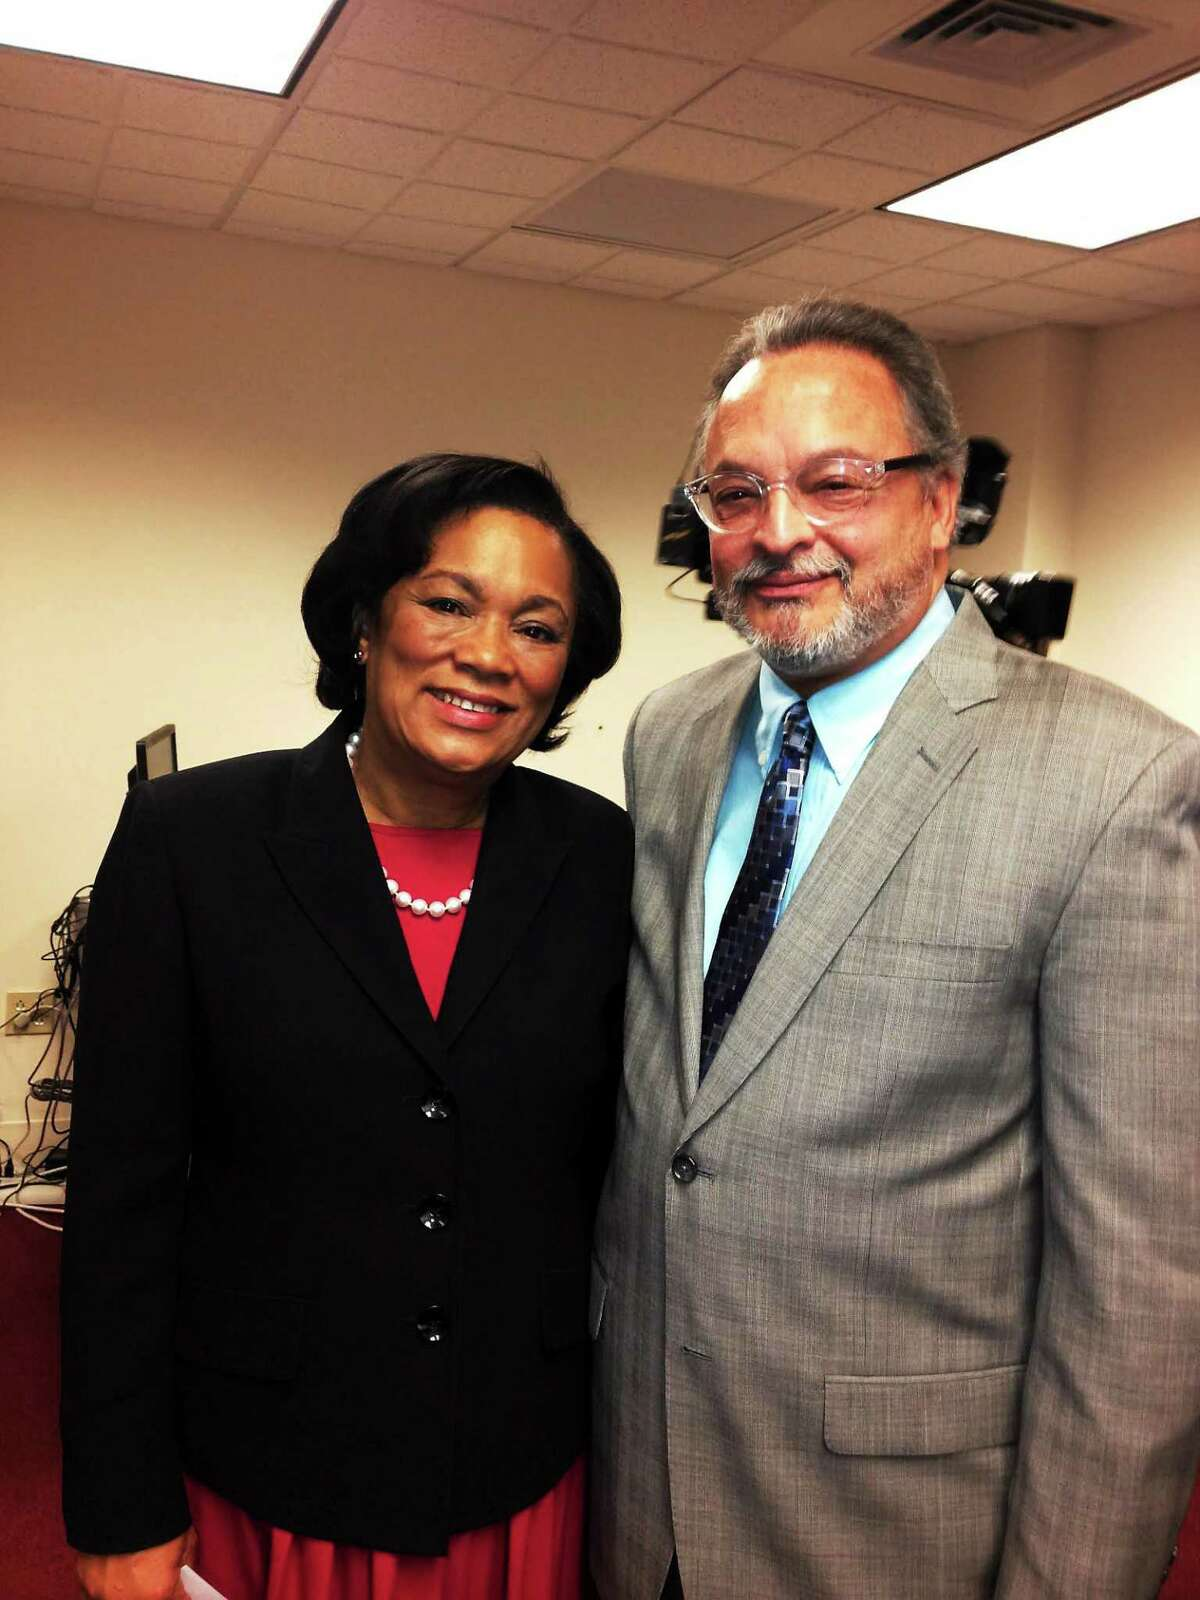 Mayor-elect Toni Harp and Tomas Reyes after he was introduced as her chief of staff